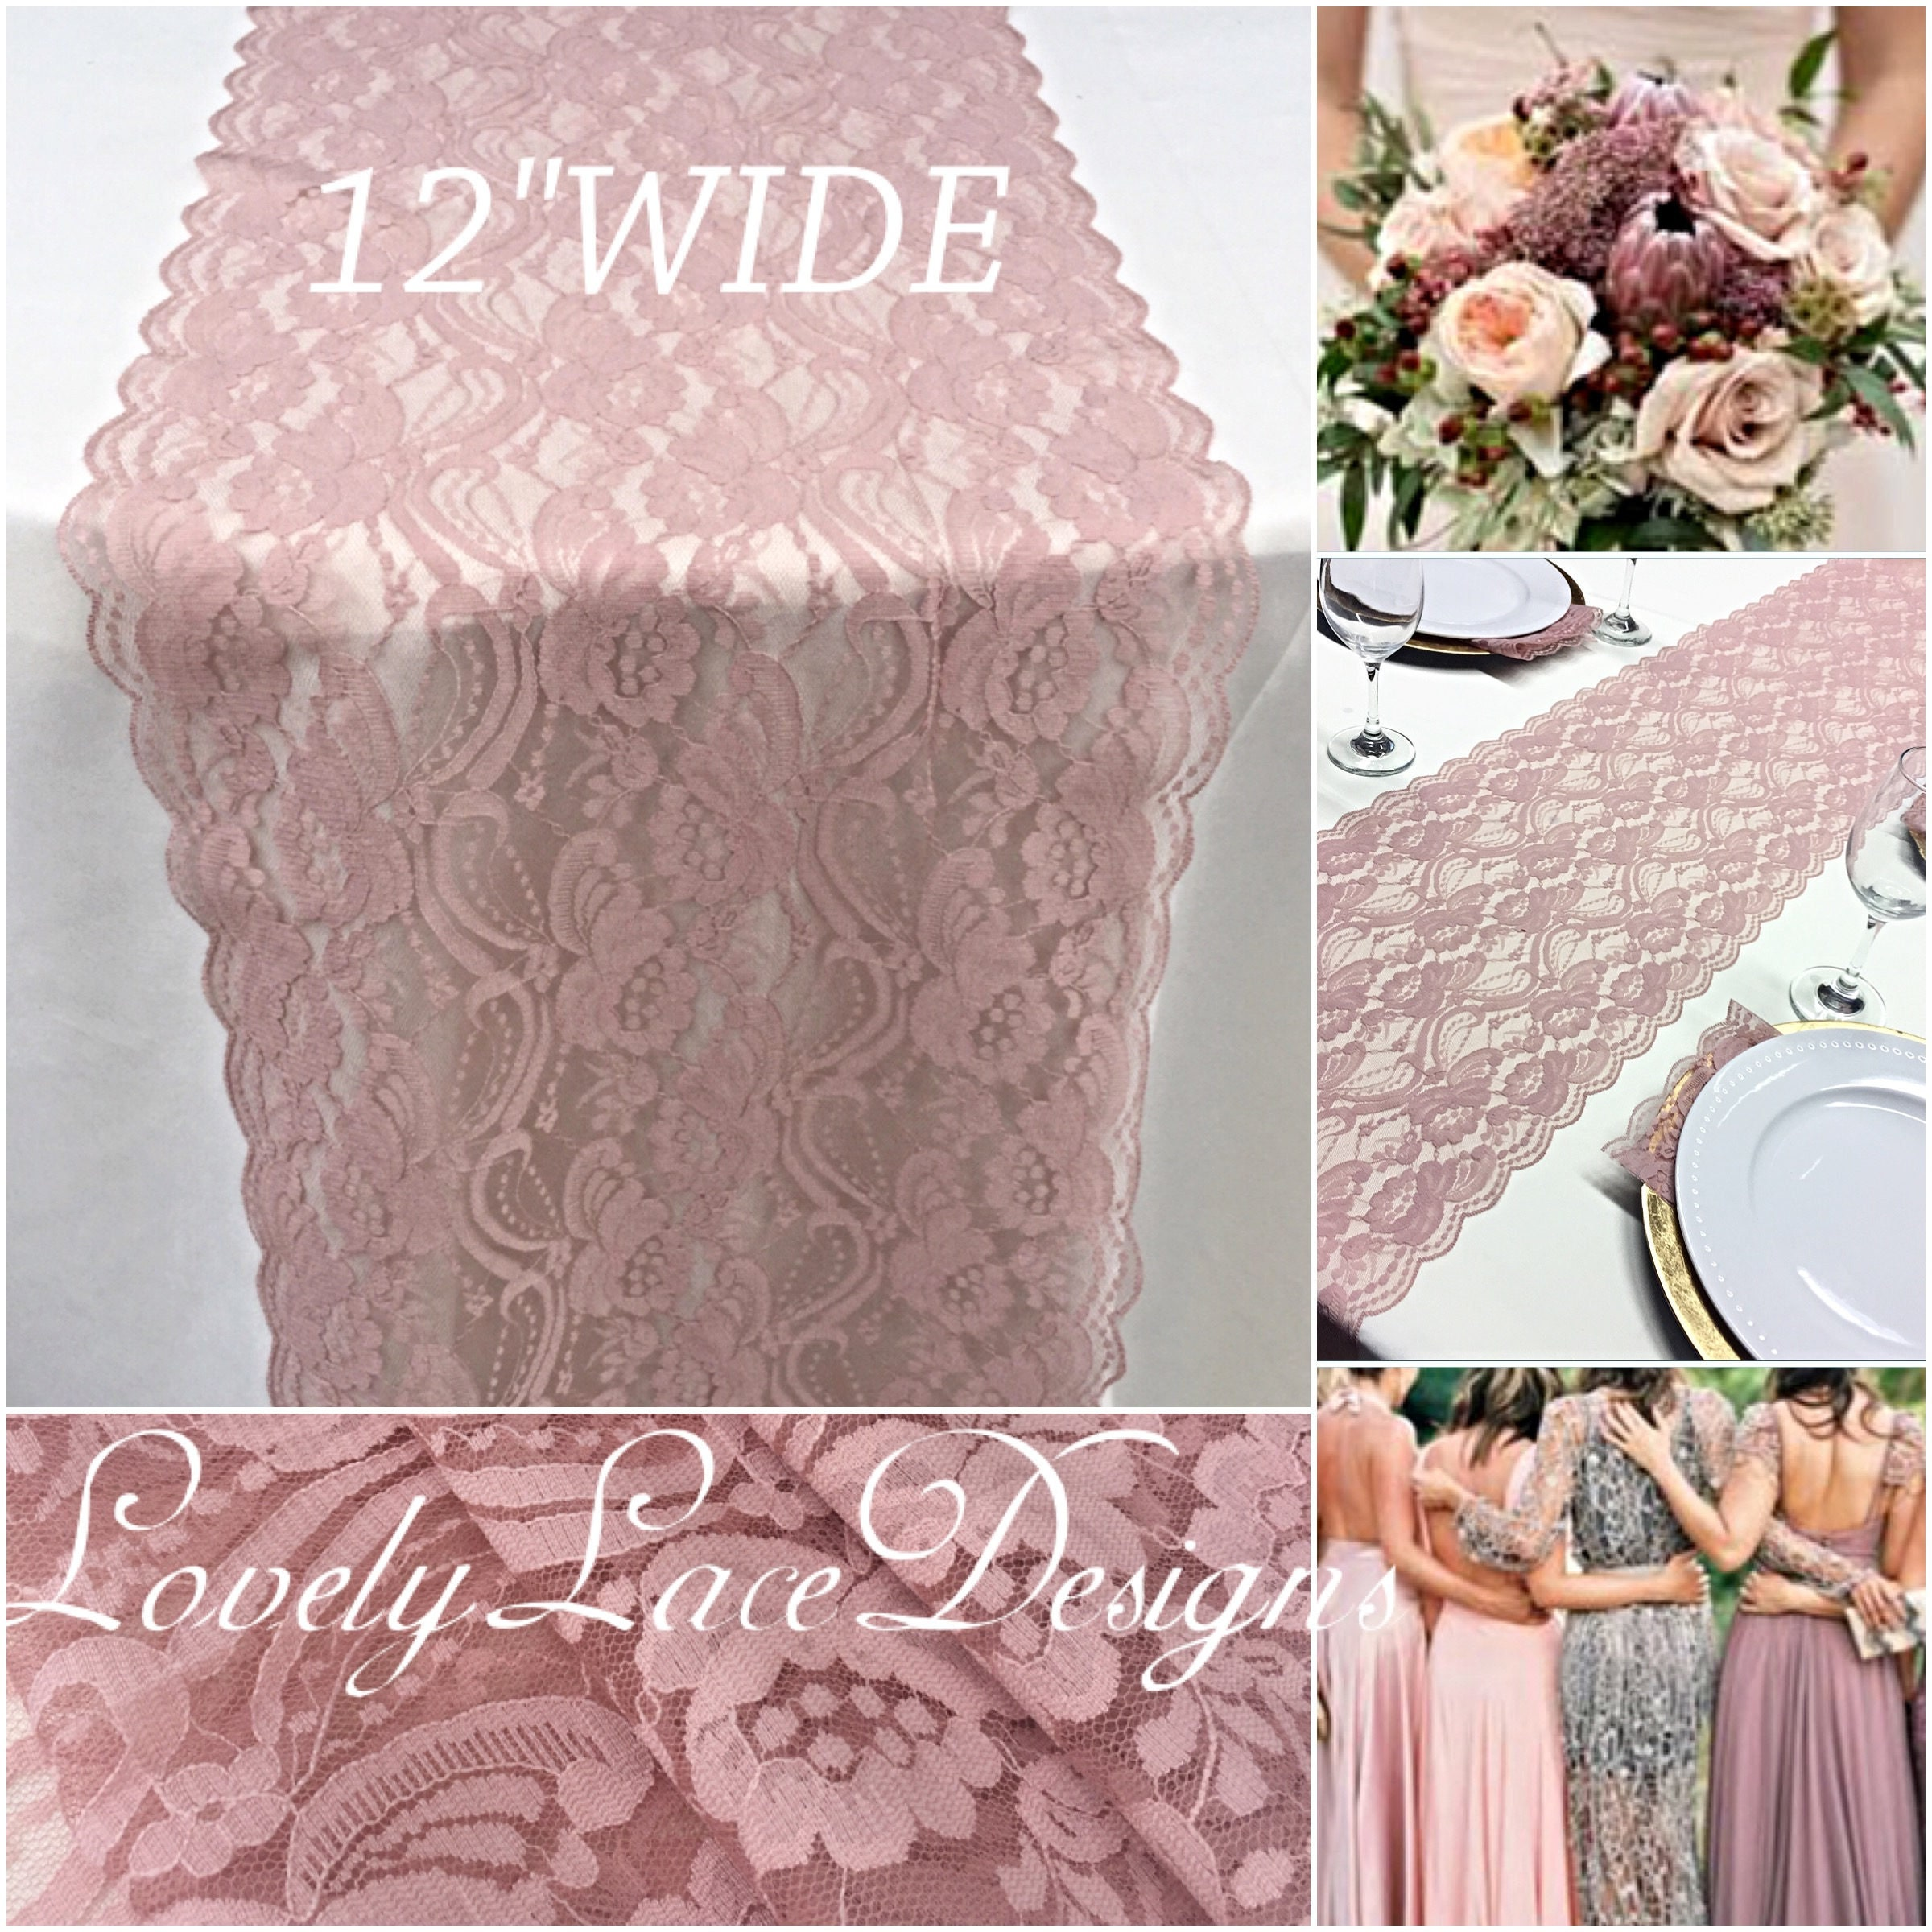 Dusty Rose Lace Table Runner3ft 10ft Long X 12widelace Overlay